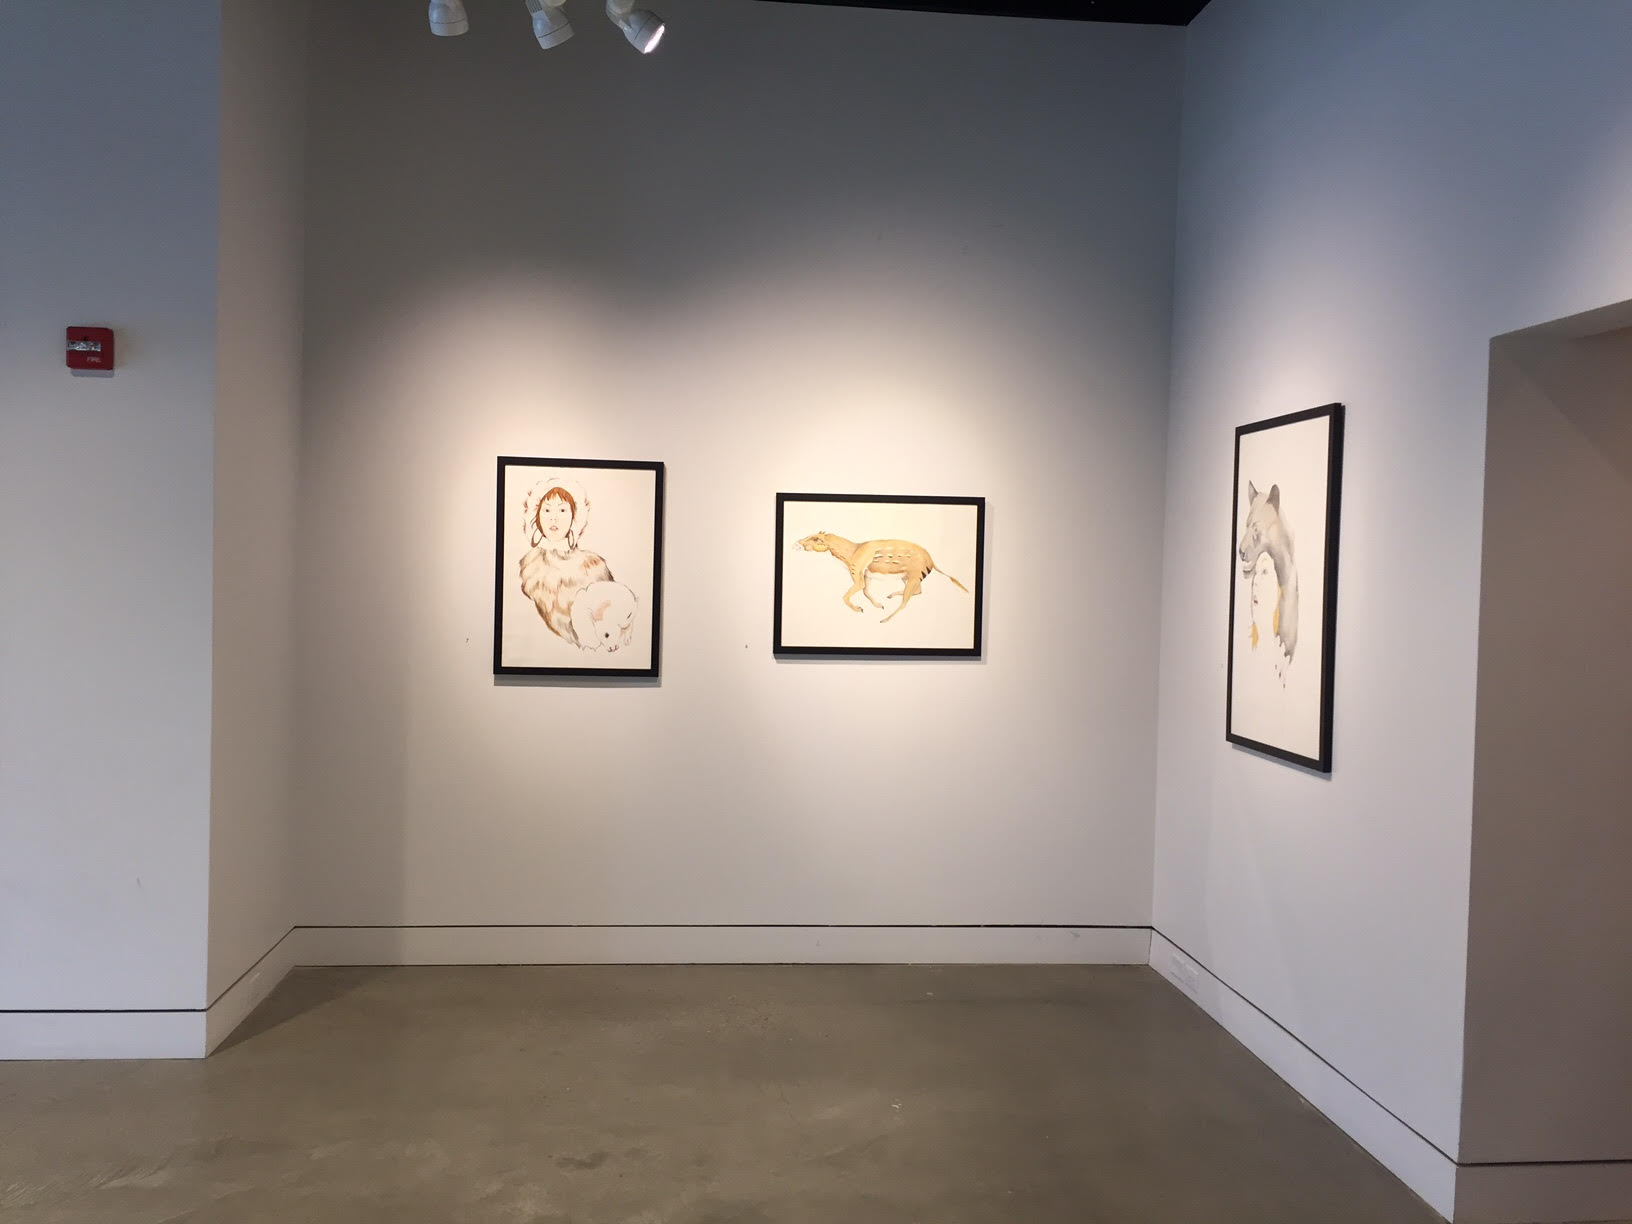 Installation view of my drawings at iMOCA